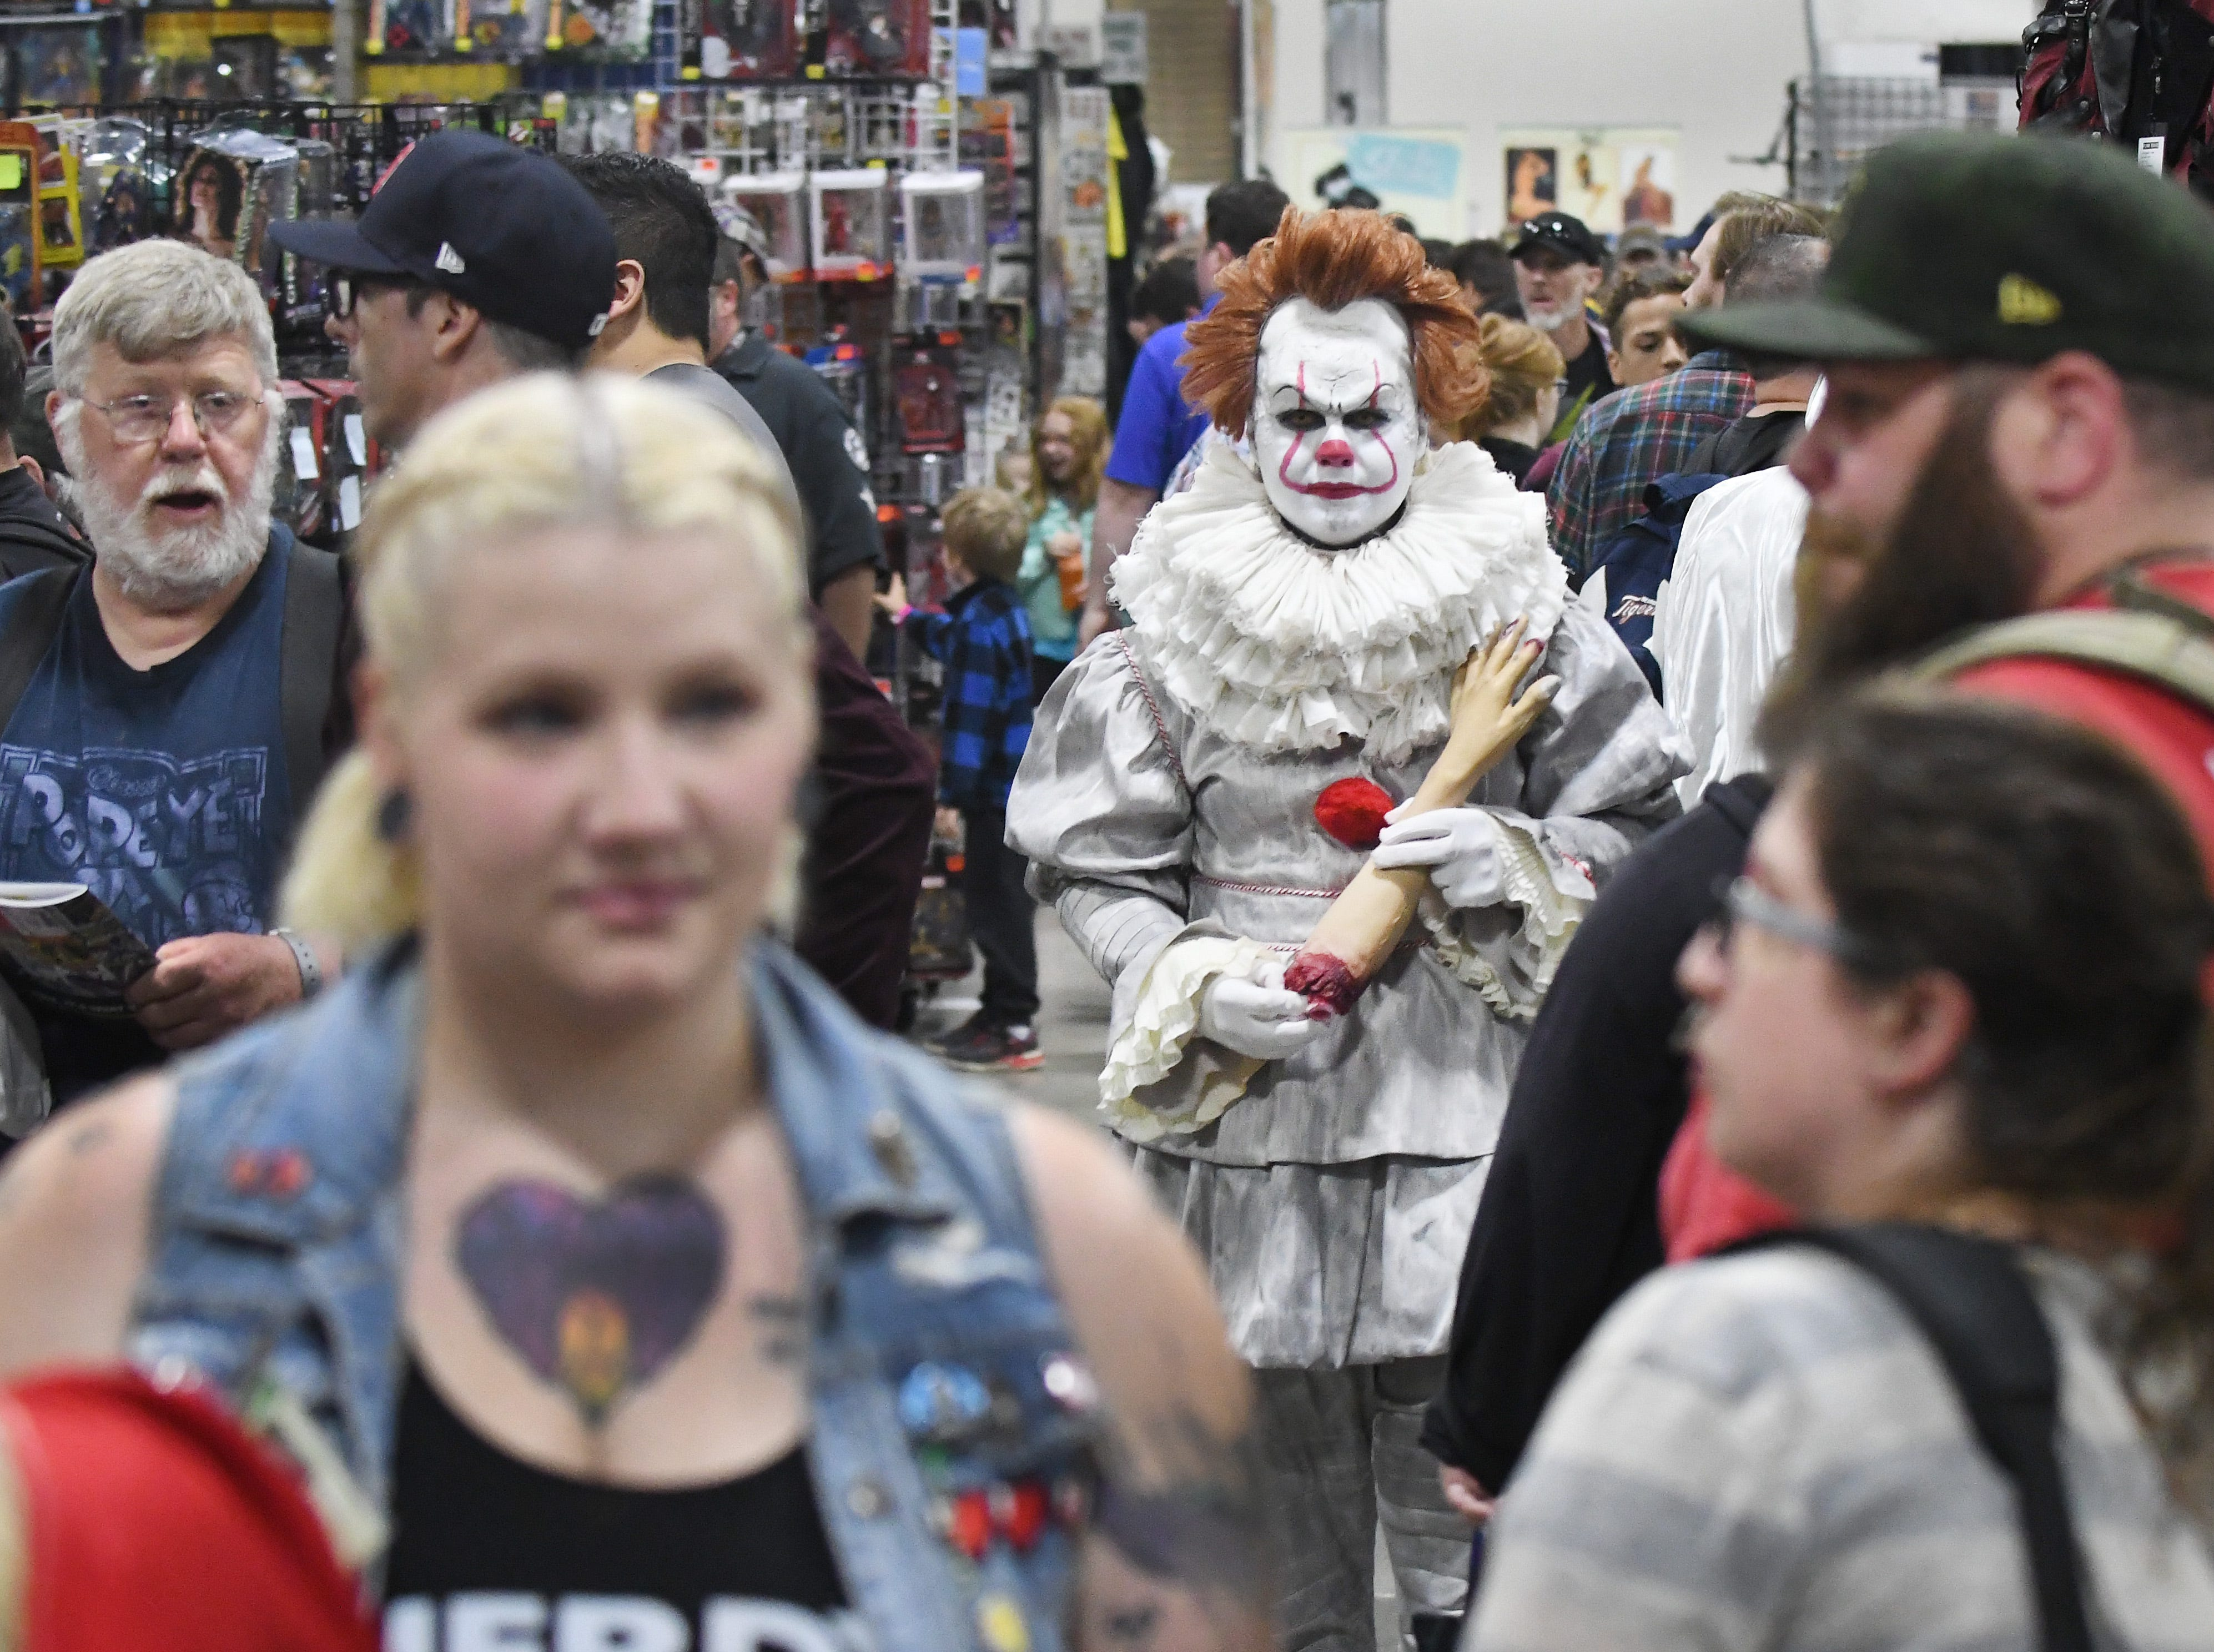 Zack Stone is terrifying as he walks down the aisles at Motor City Comic Con in Novi as Pennywise the Dancing Clown from Stephen King's 'It' book and film on May 17, 2019.